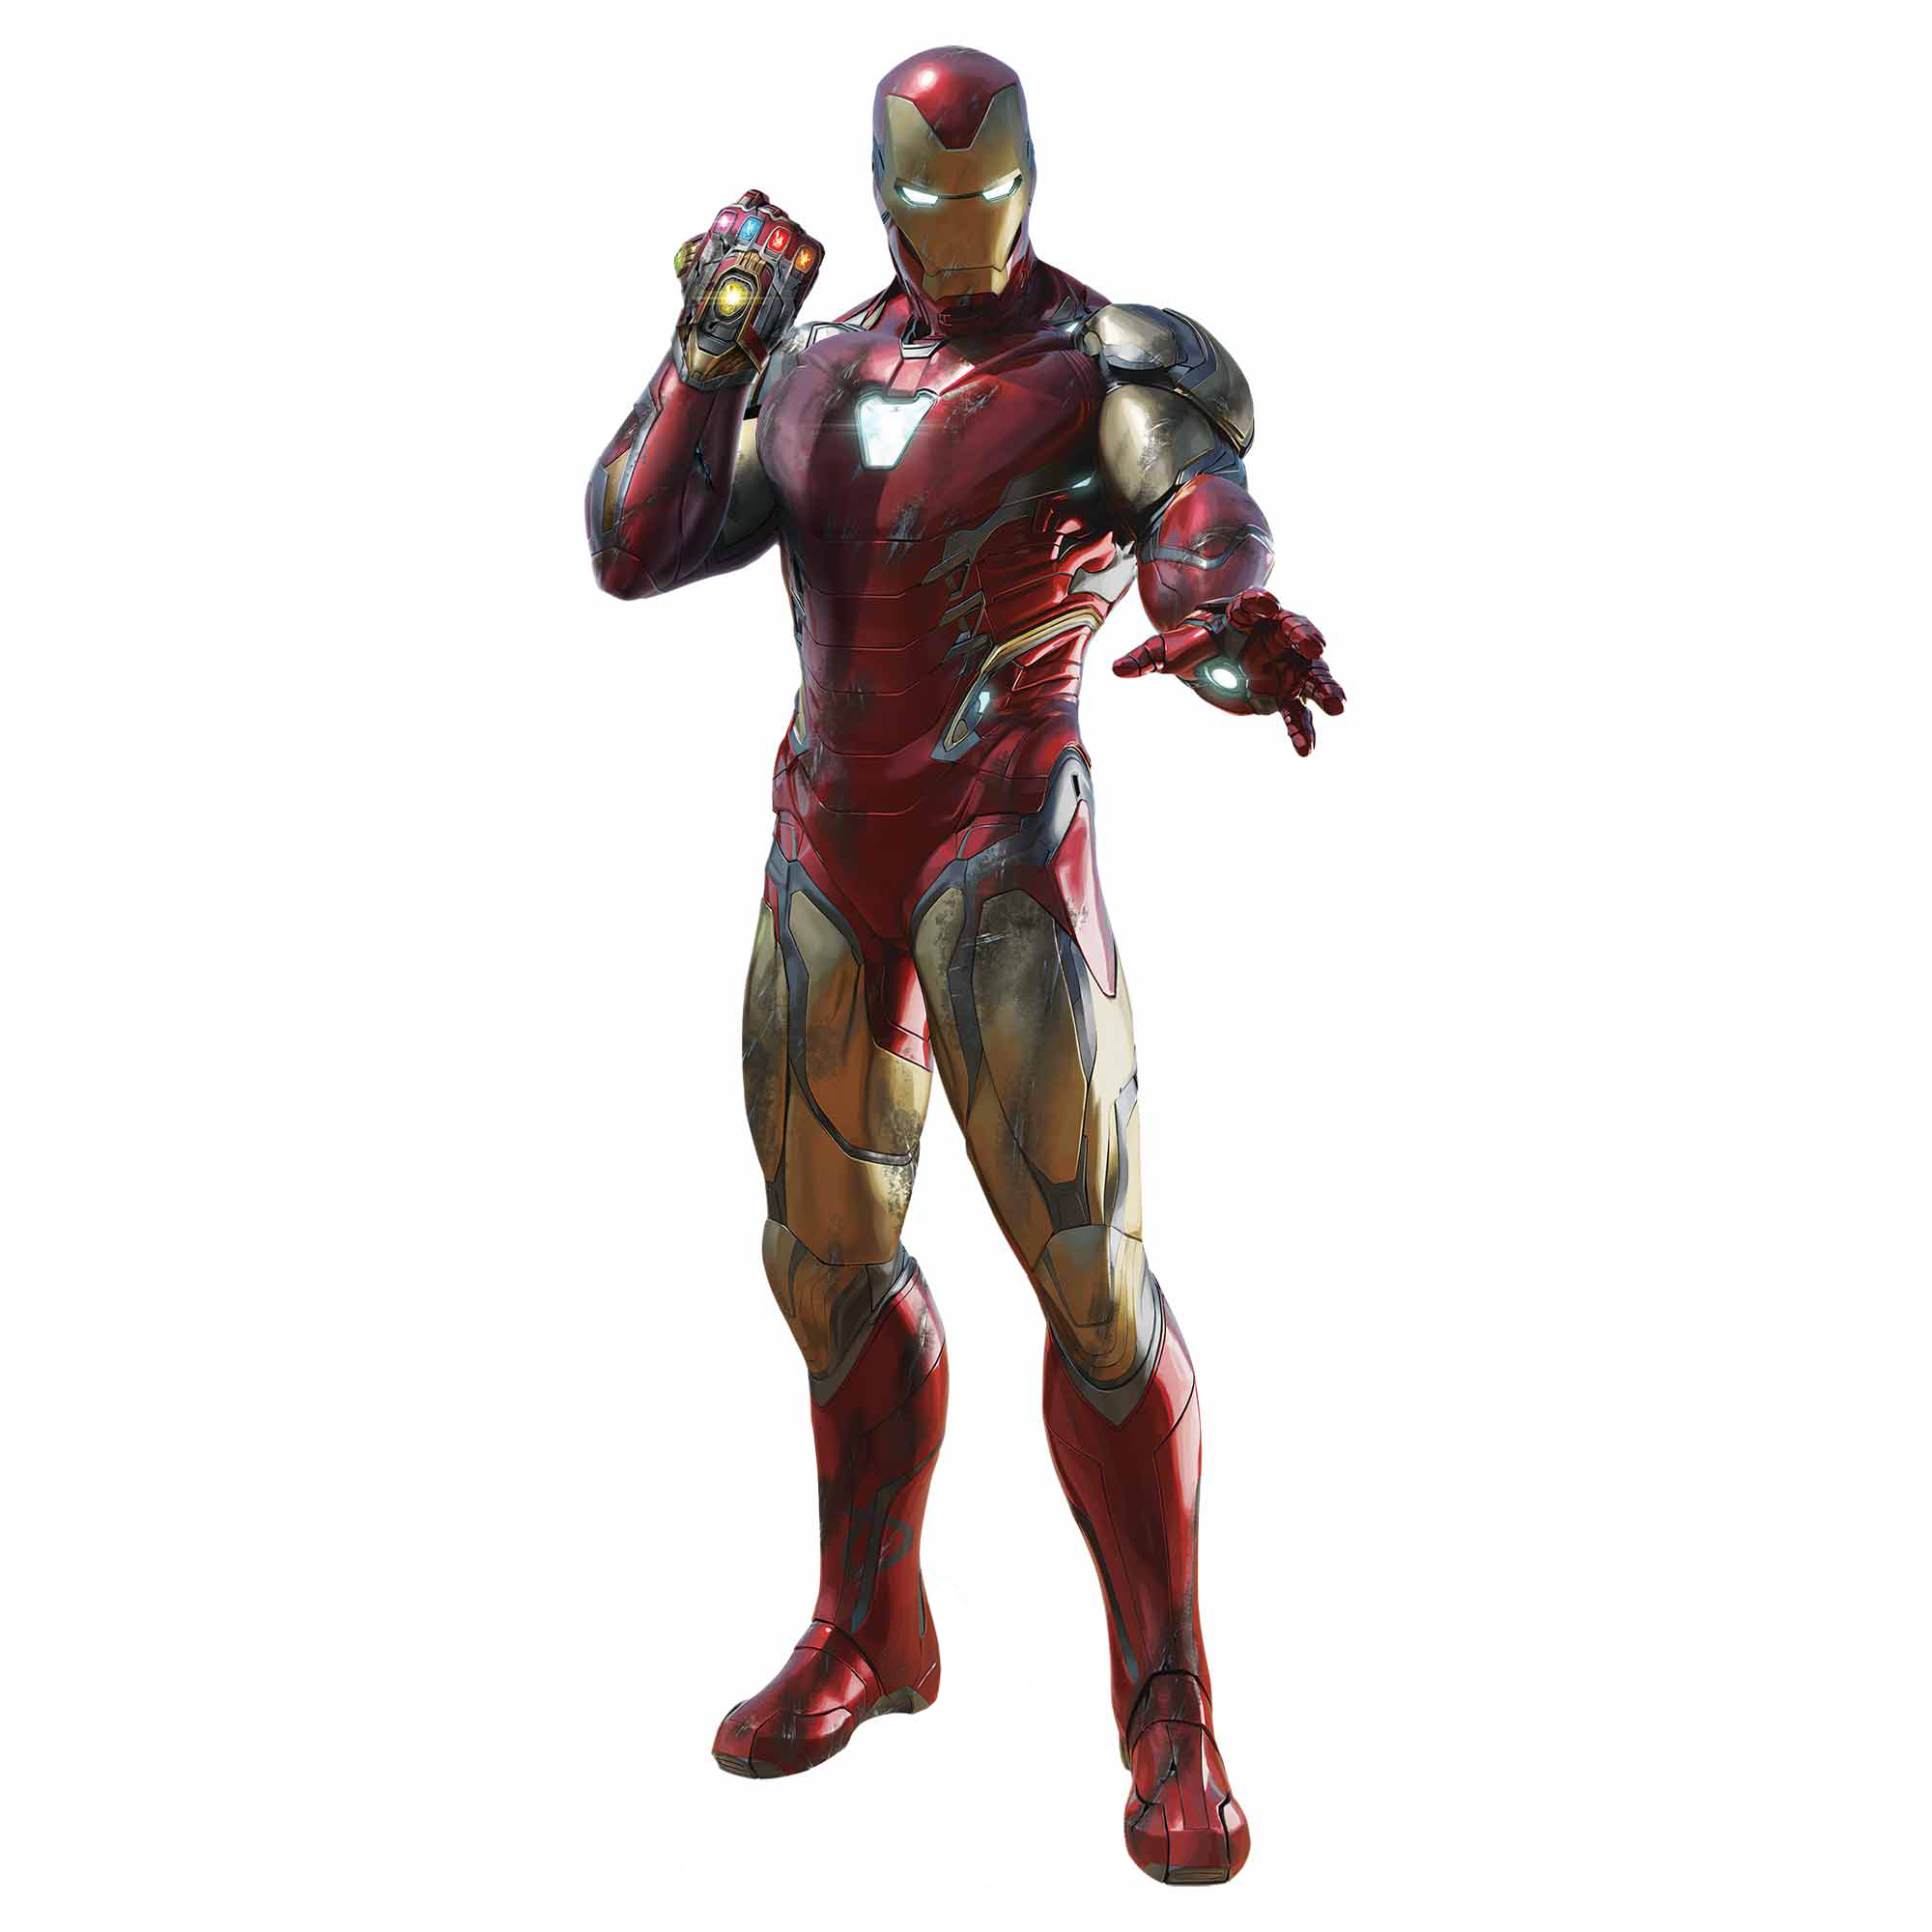 Official Licensing And Promo Art Of Iron Man With The Infinity Gauntlet Iron Man Avengers Marvel Iron Man Iron Man